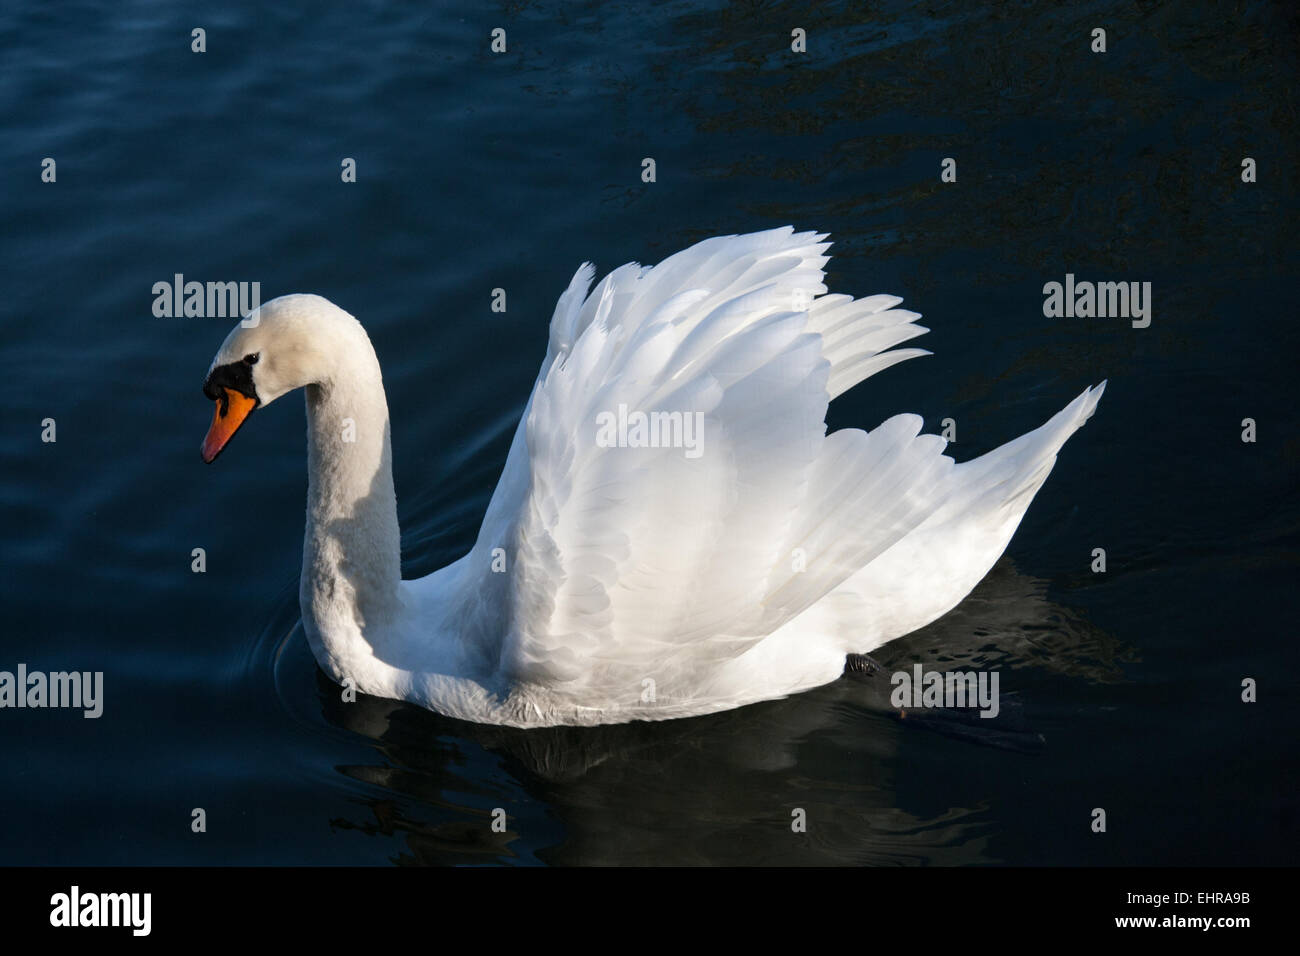 A mute swan with wings open - Stock Image